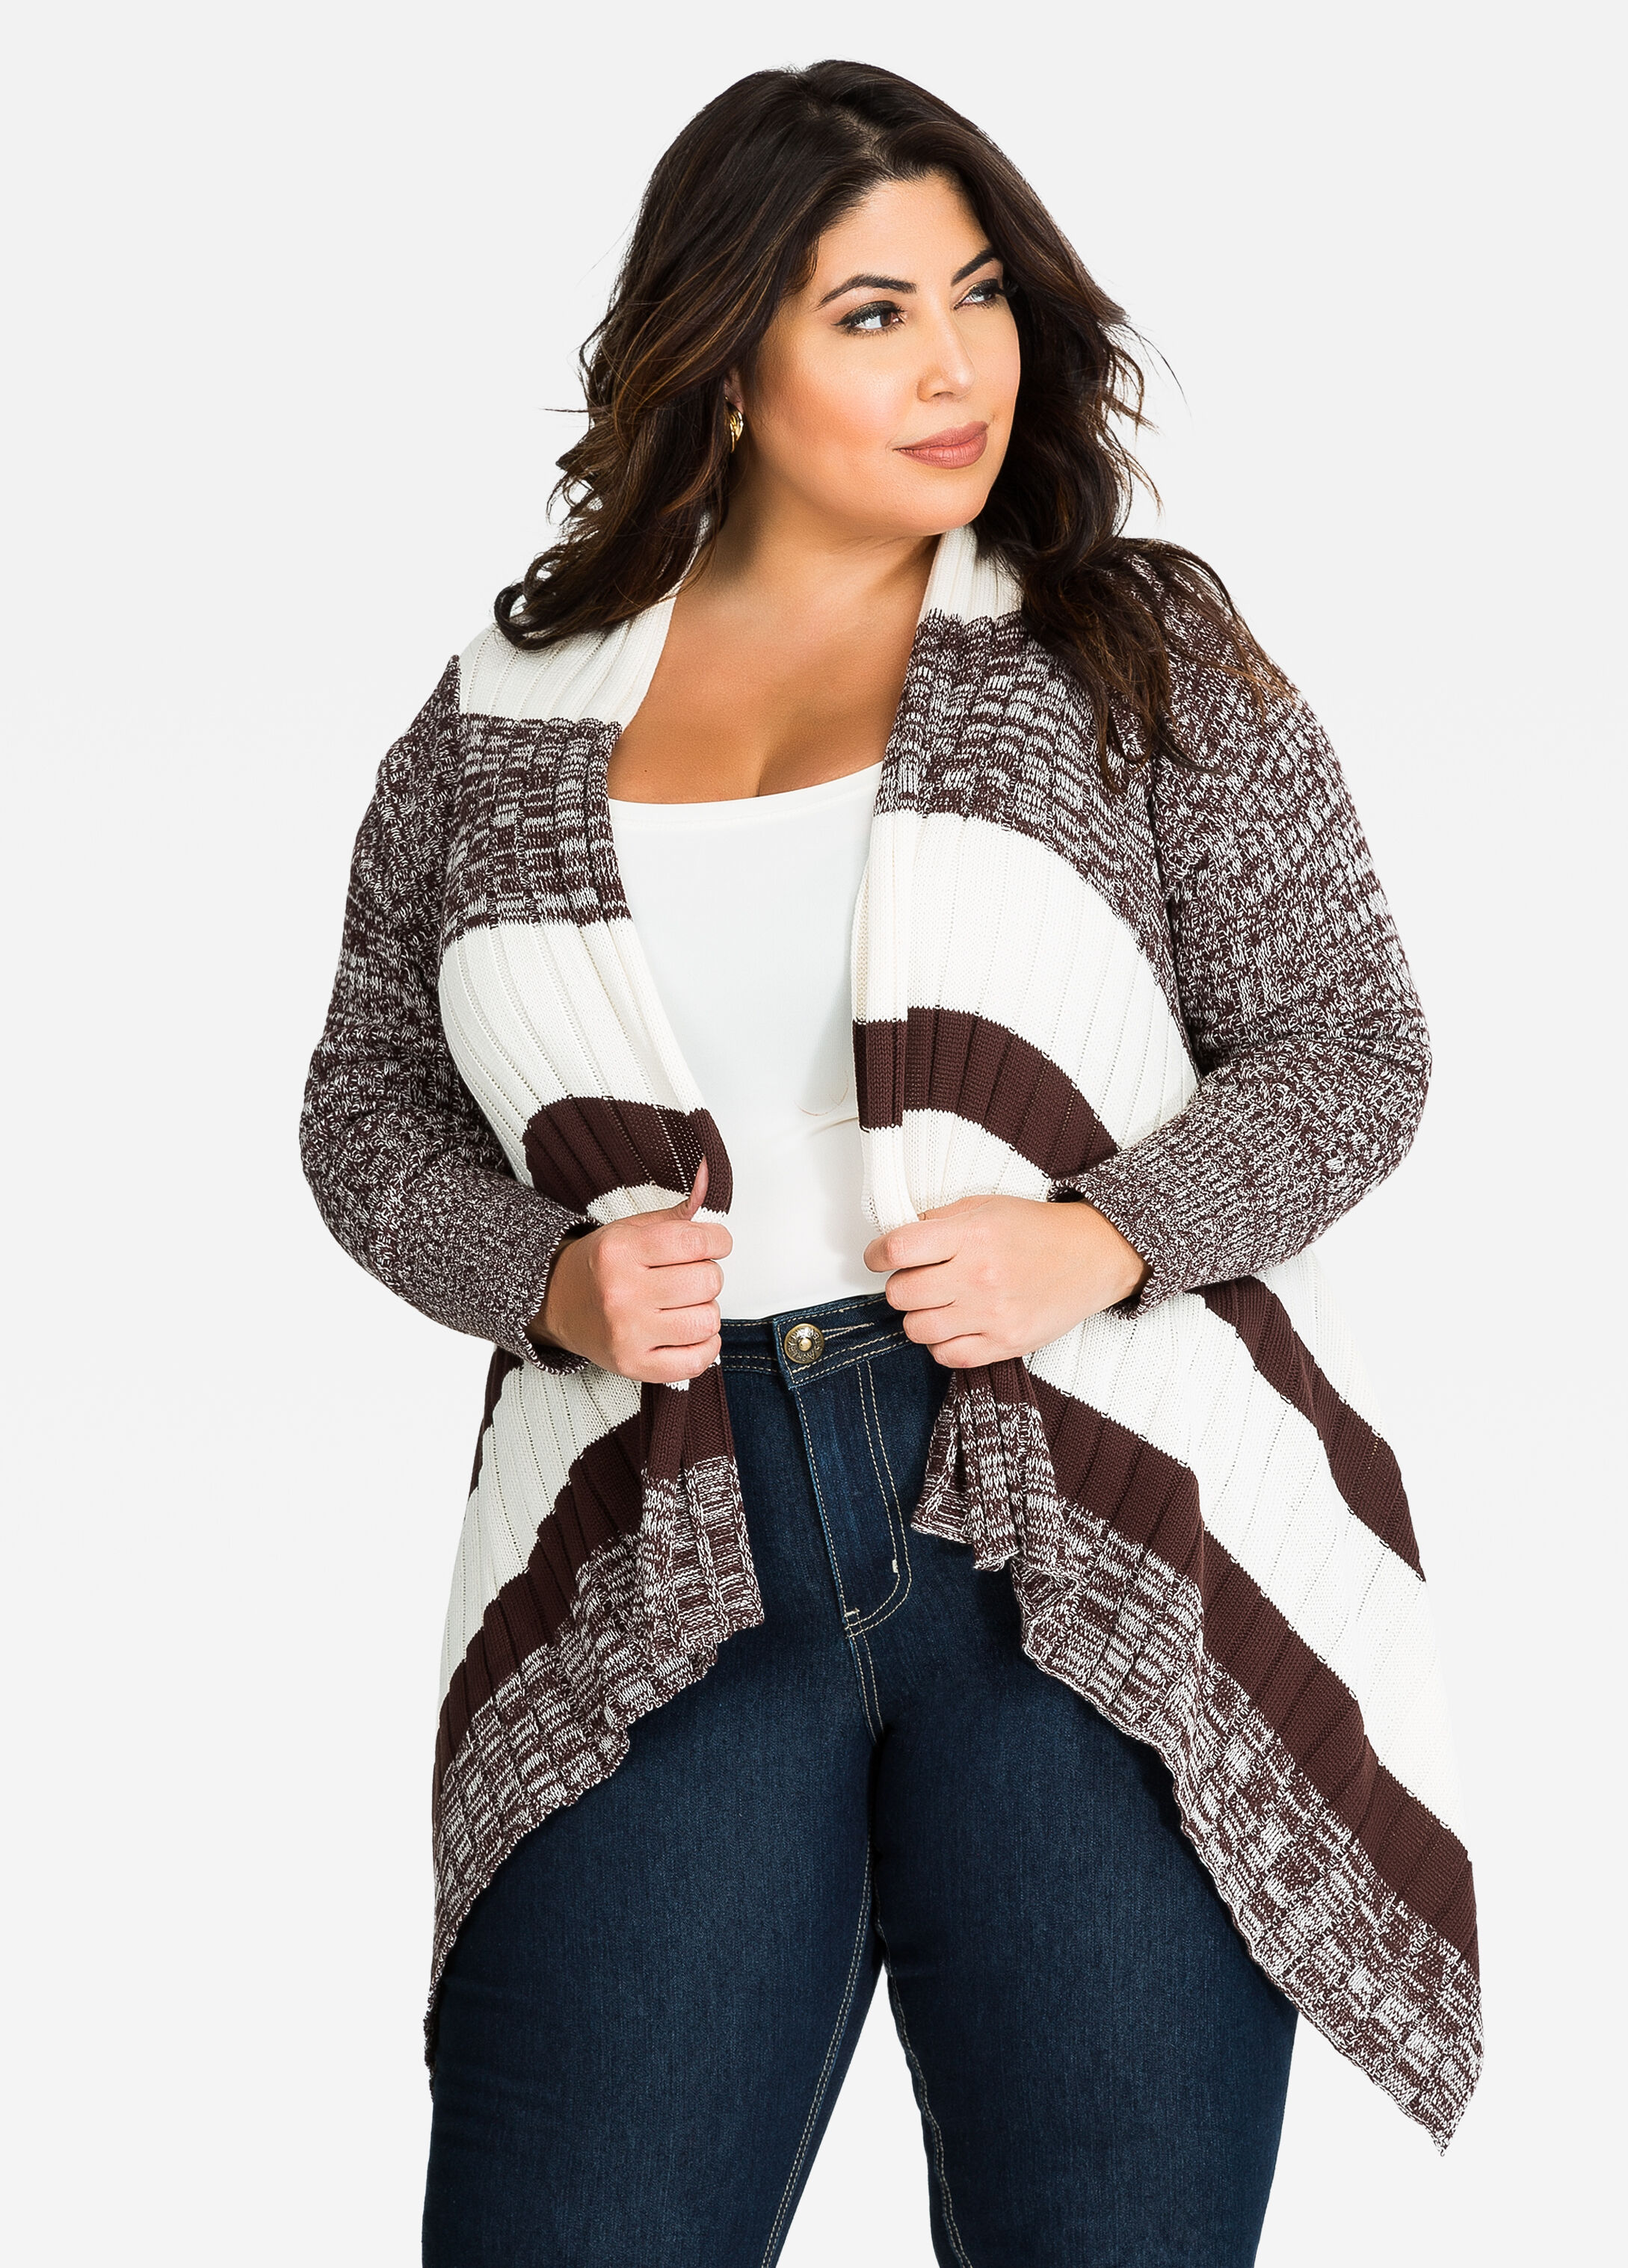 Plus Size Sweaters - Cardigans - Striped Cardigans - Sharkbite hem